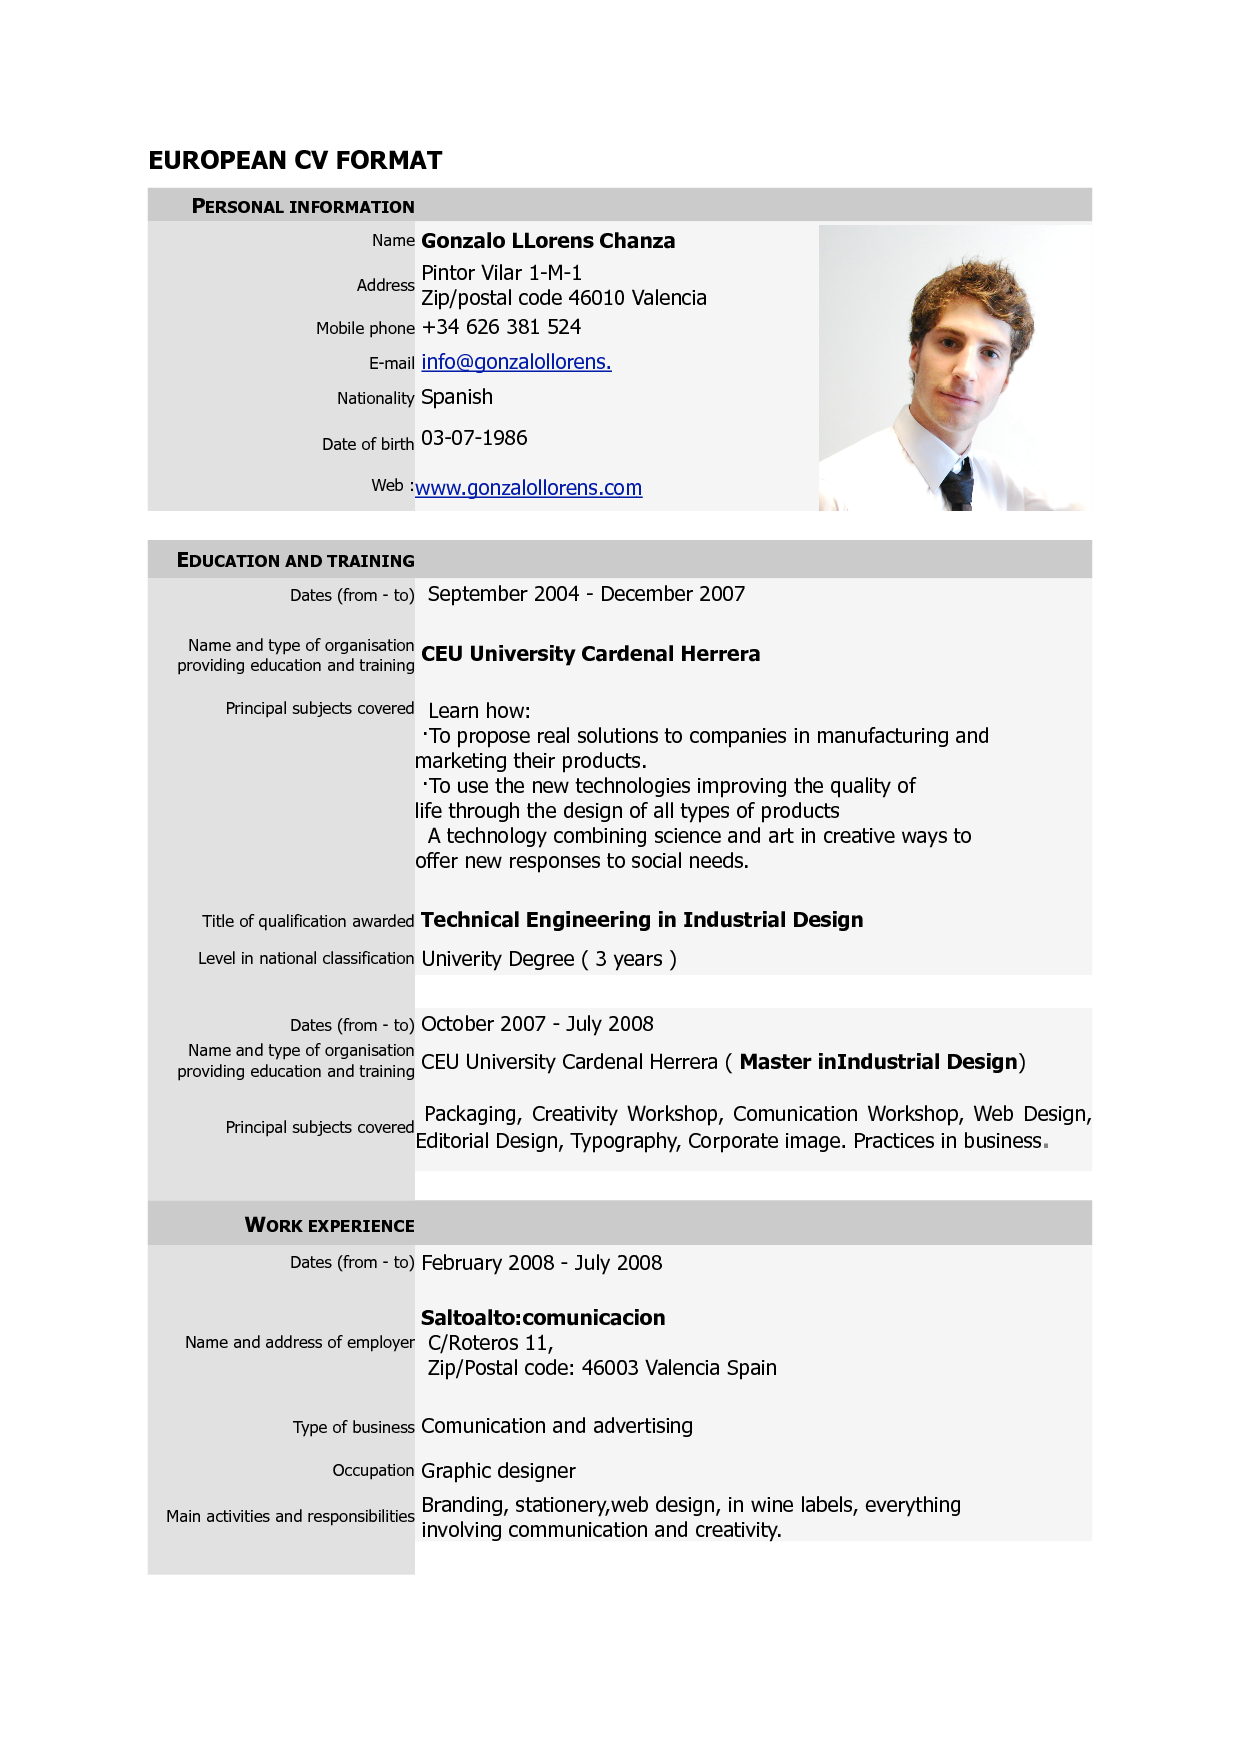 Resume Templates Free Download Word Free Download Cv Europass Pdf Europass Home European Cv Format Pdf